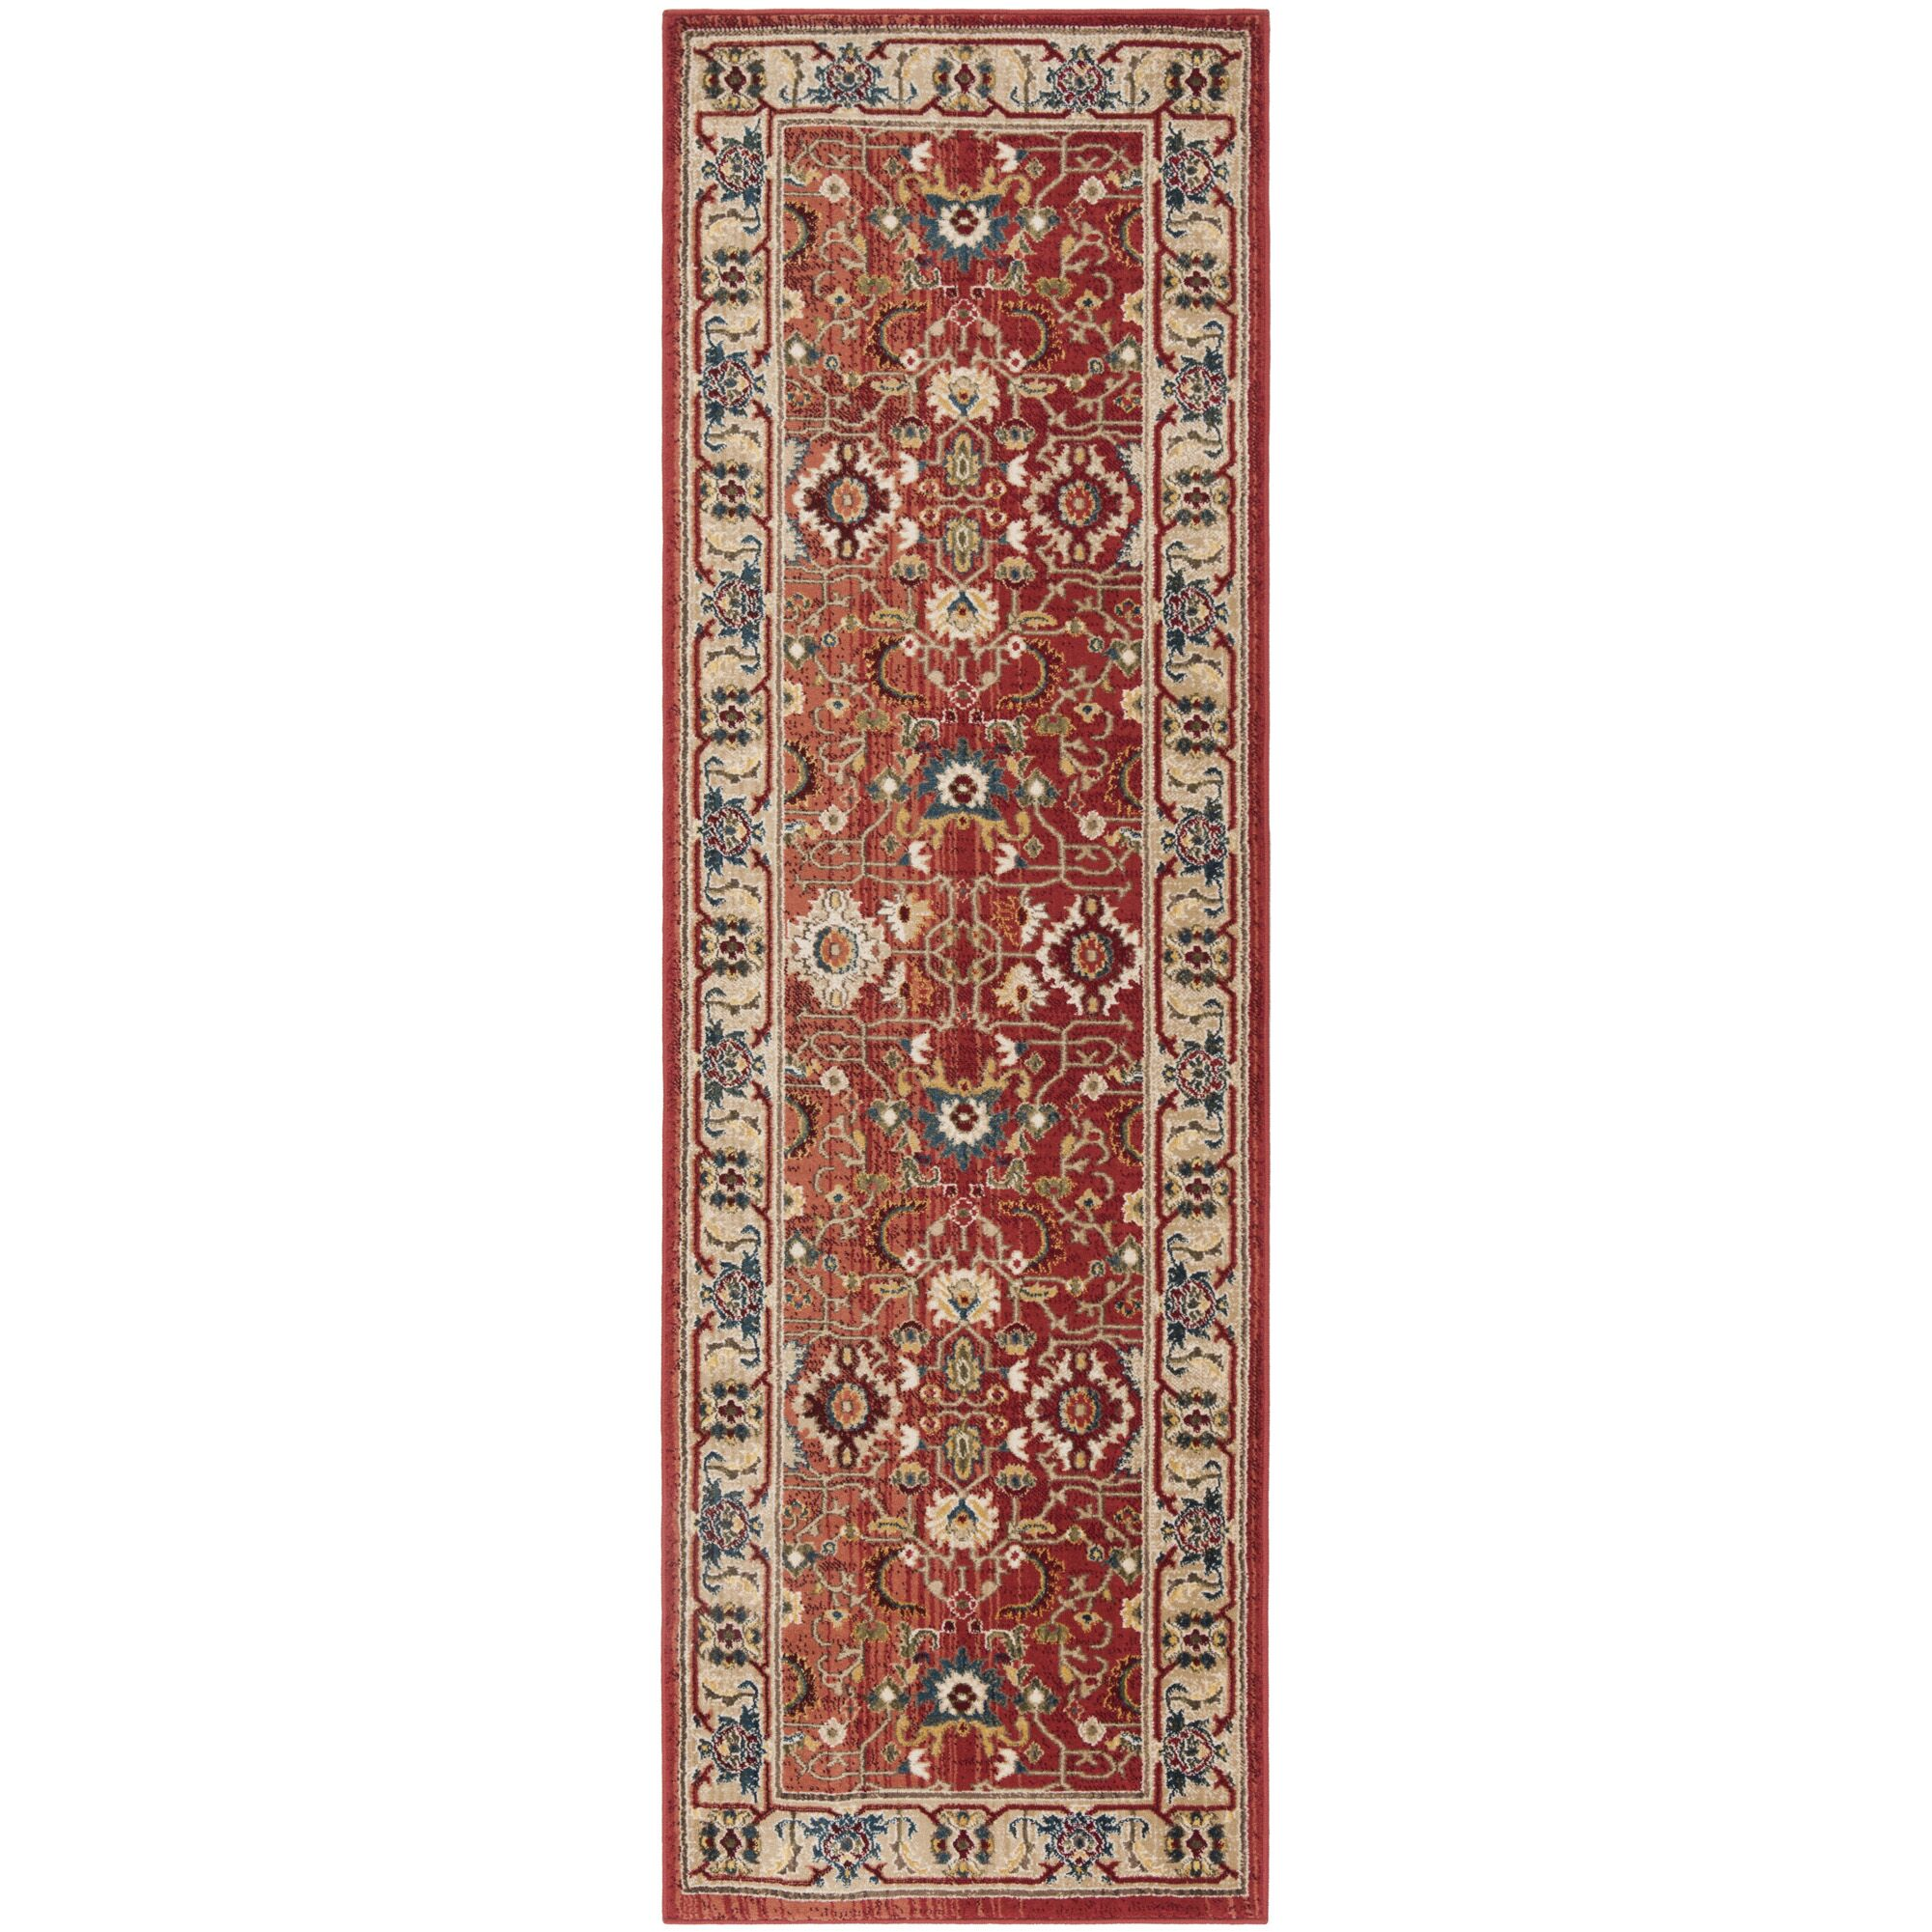 Ines Red/Beige Area Rug Rug Size: Runner 2'6